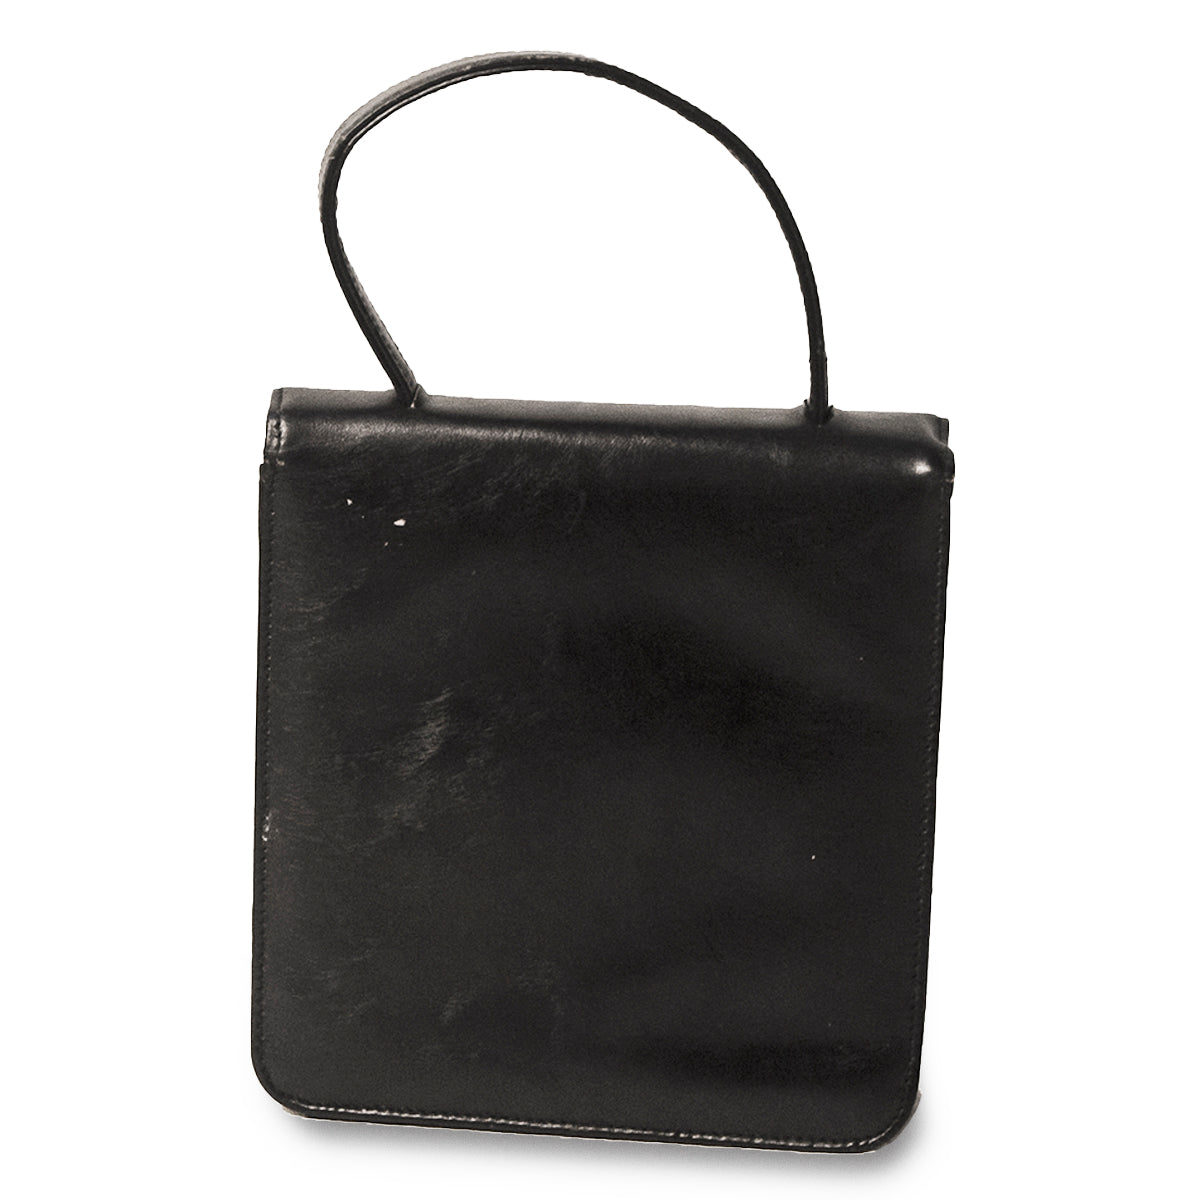 1950s Black Cocktail Bag 4, Rhinestone Closure